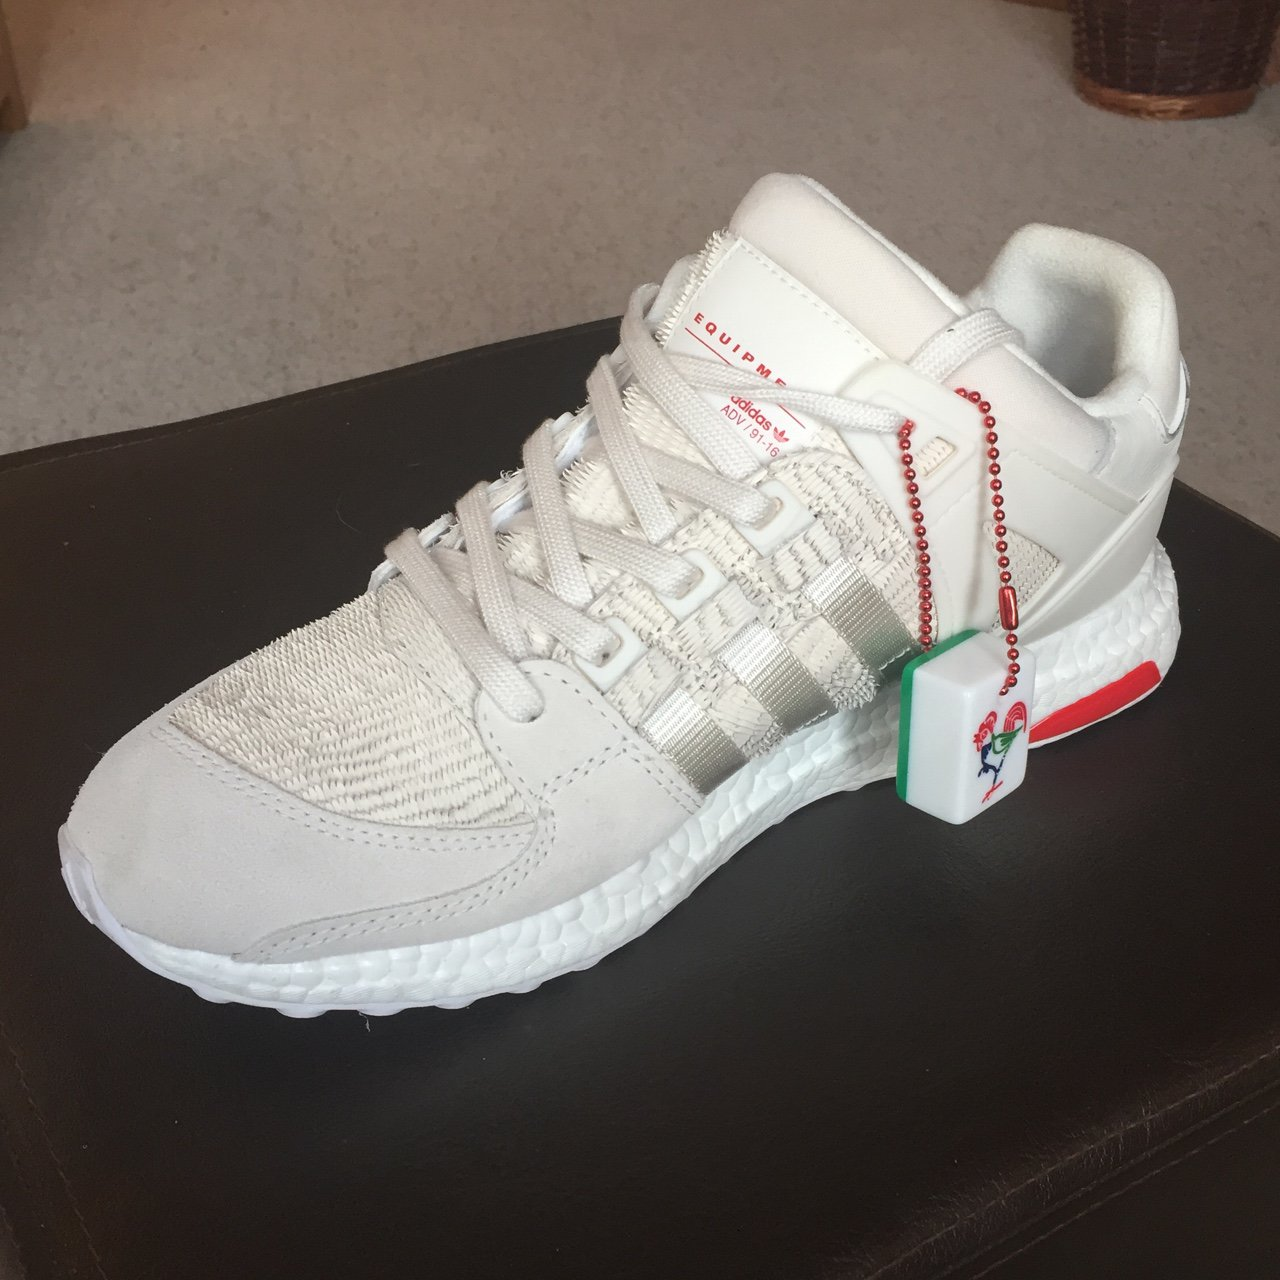 premium selection 70513 91017 Adidas Depop Boost Rrp Of Rare Do Cyn Support The Ultra year Eqt 1gdwpqxB